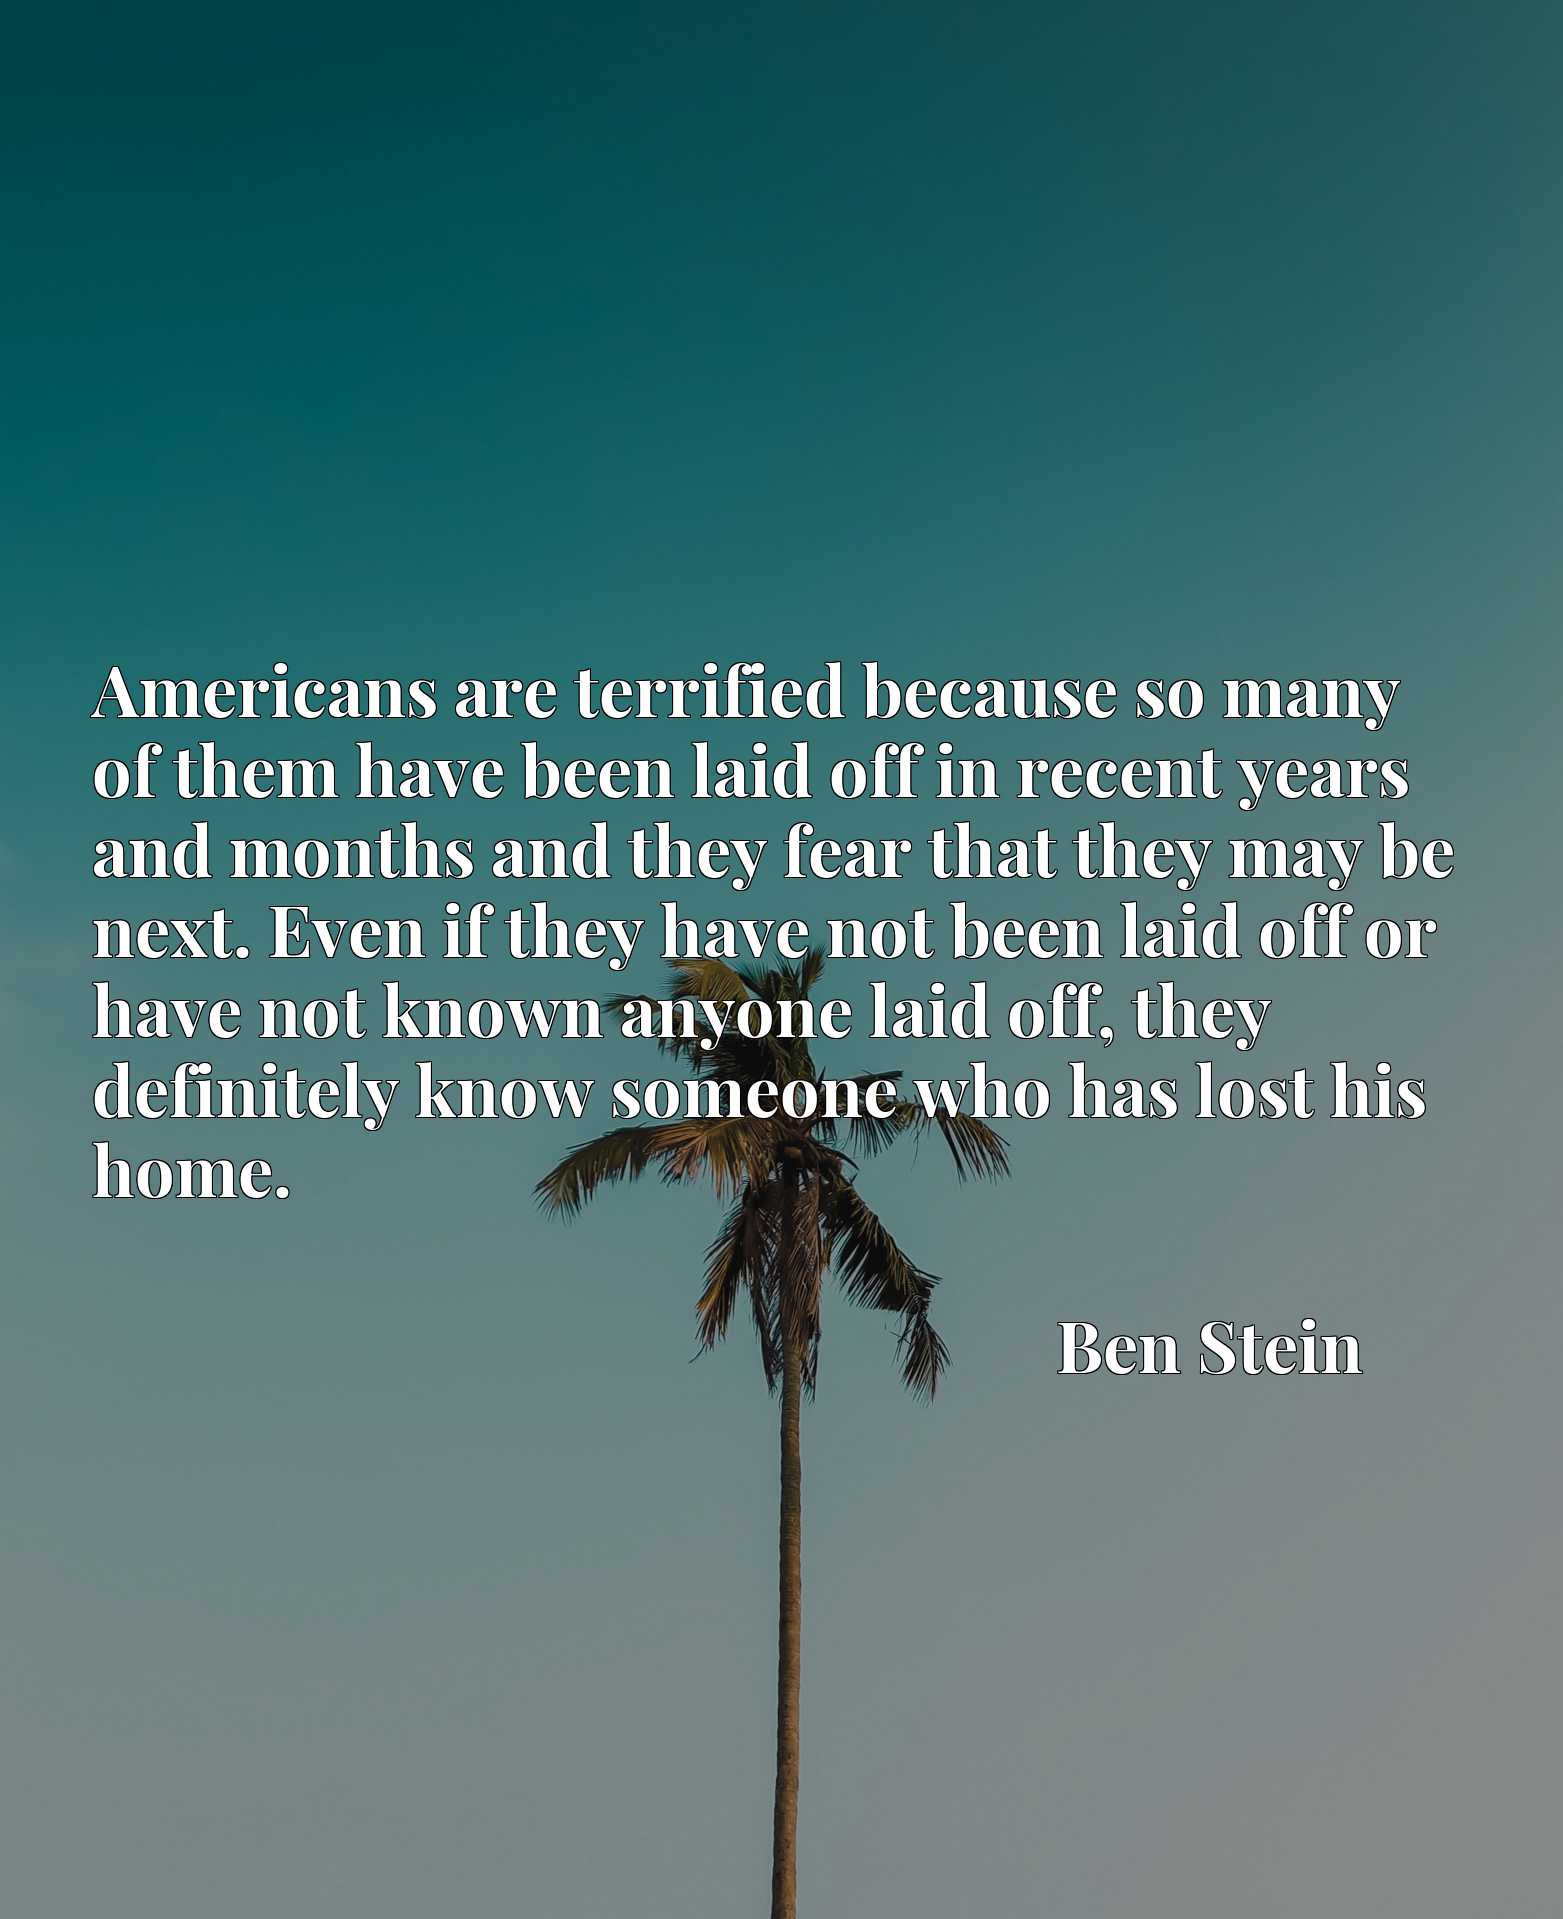 Americans are terrified because so many of them have been laid off in recent years and months and they fear that they may be next. Even if they have not been laid off or have not known anyone laid off, they definitely know someone who has lost his home.